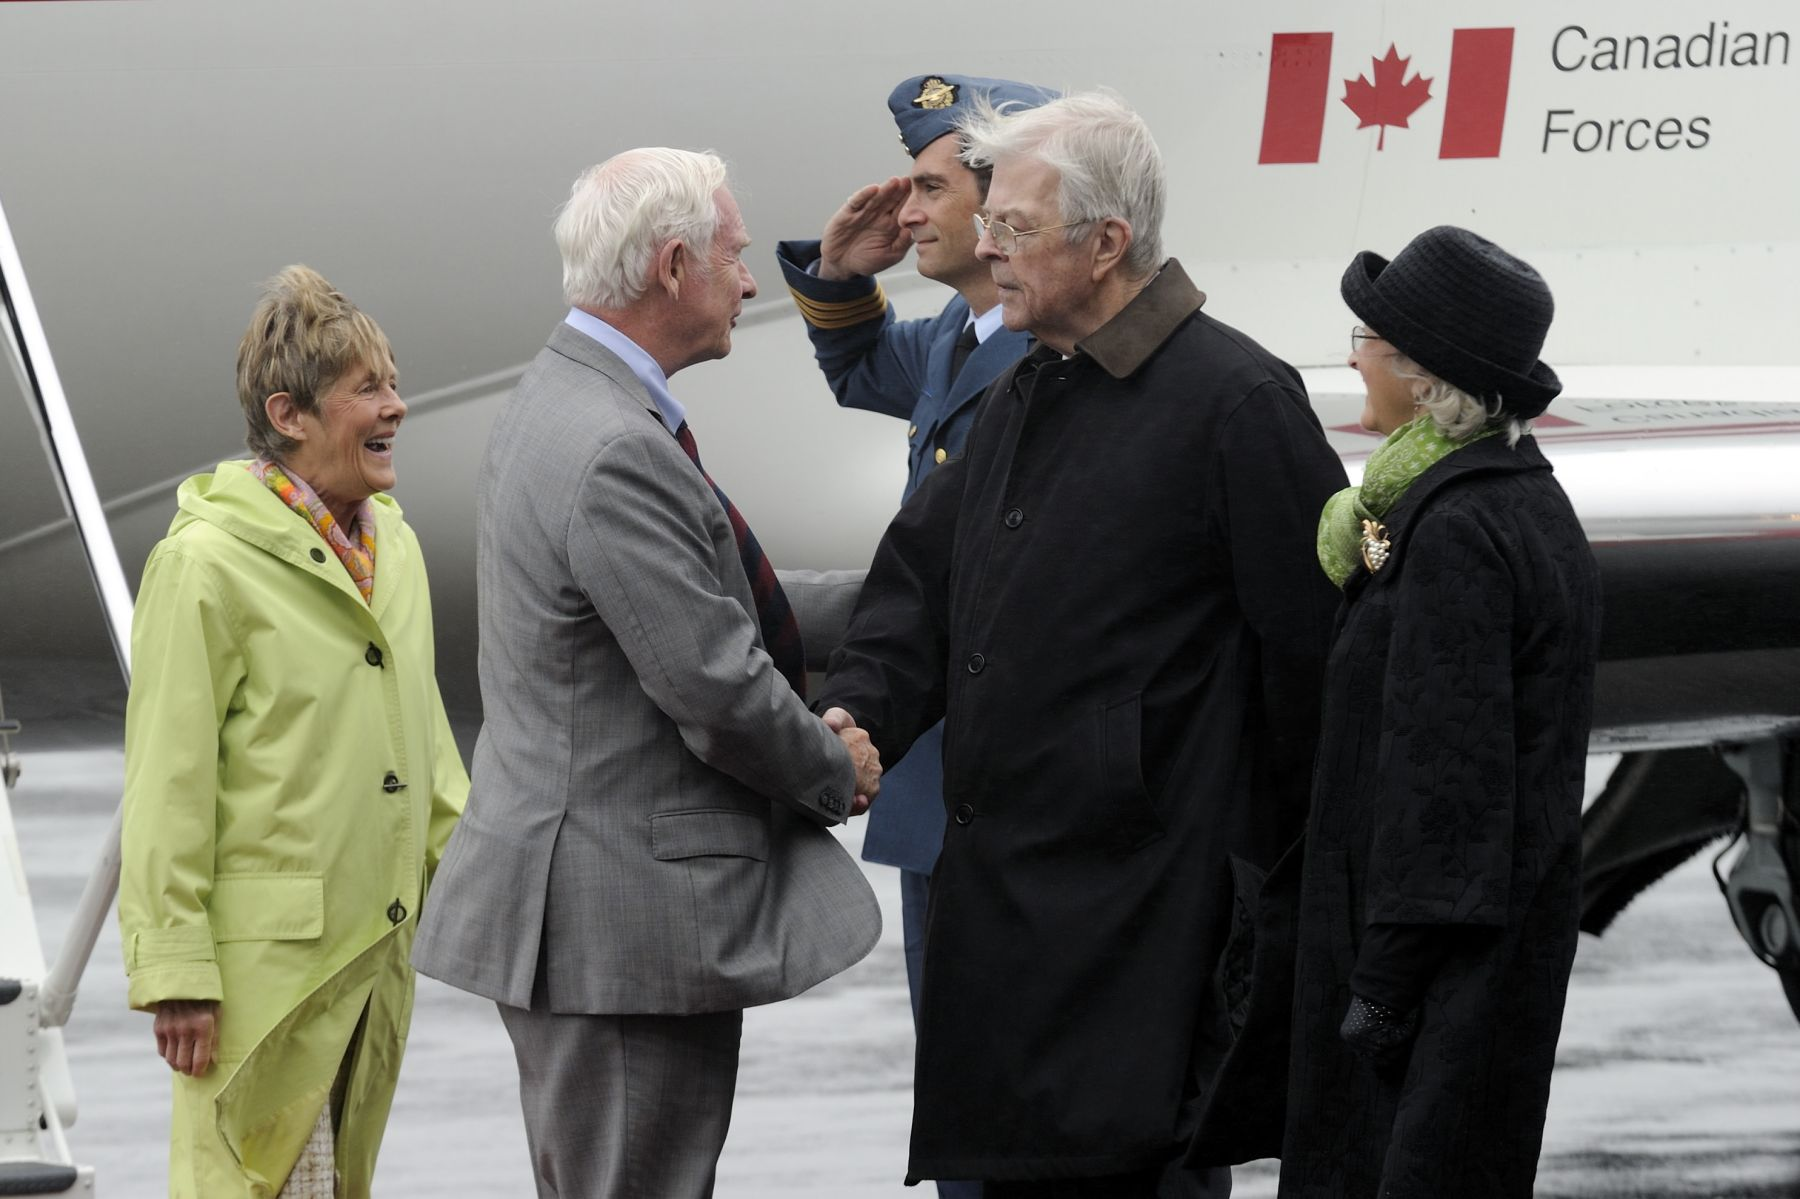 Upon their arrival in St. John's, Their Excellencies were greeted by Their Honours the Honourable John Crosbie, Lieutenant Governor of Newfoundland and Labrador, and his wife Mrs. Jane Crosbie.